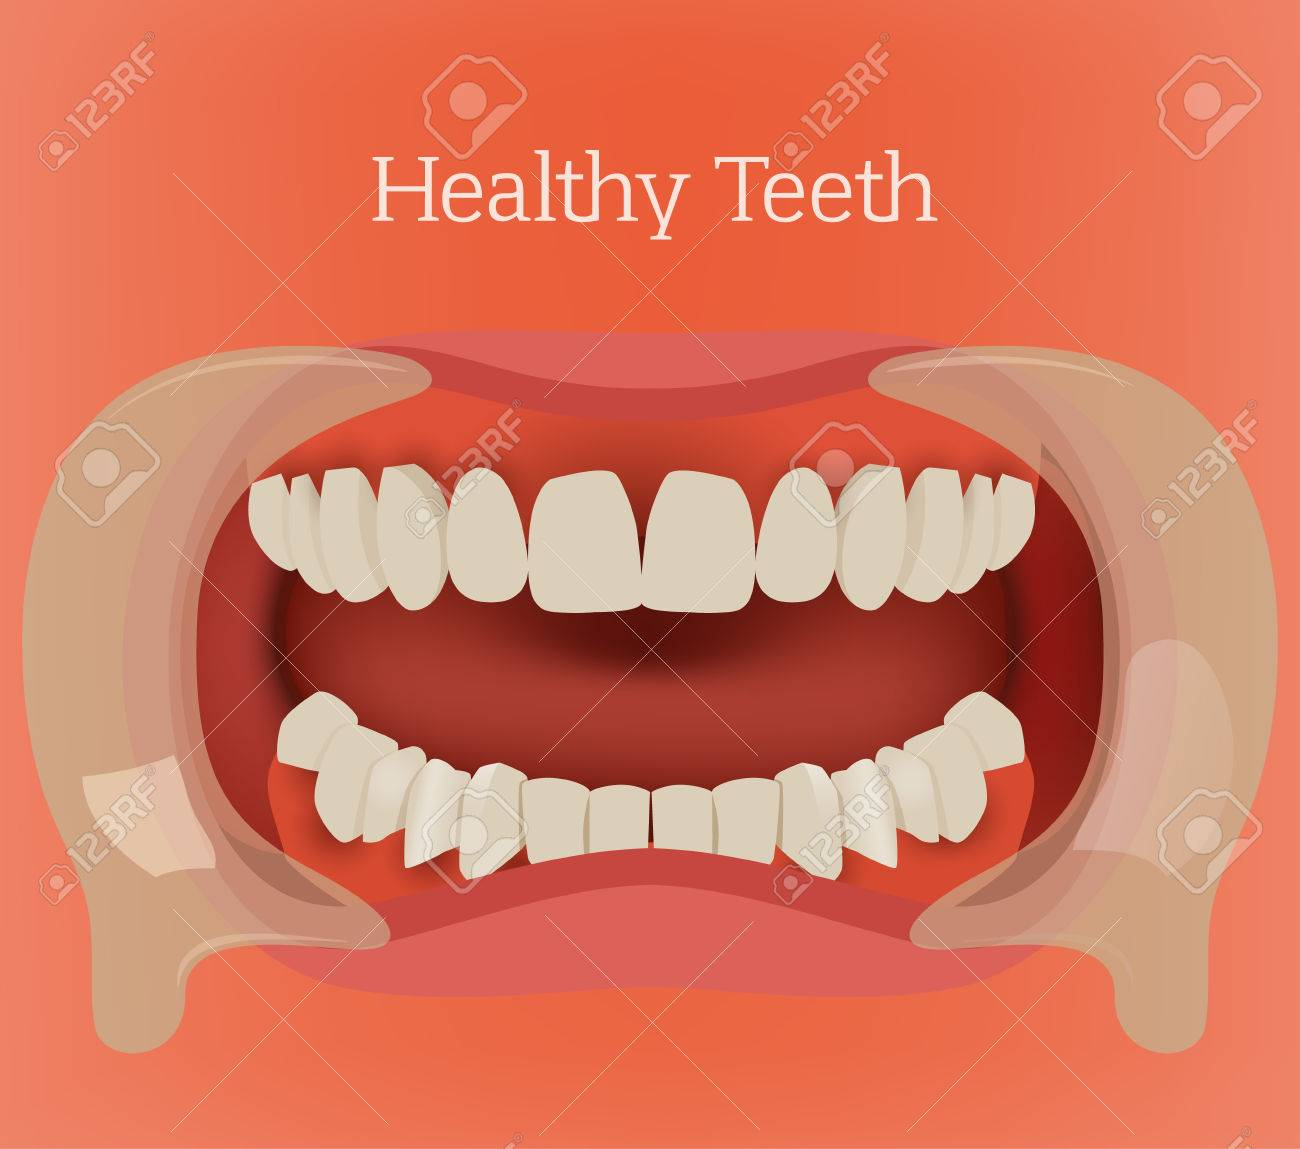 Healthy Teeth Illustration Vector Dental Image With Orthodontic